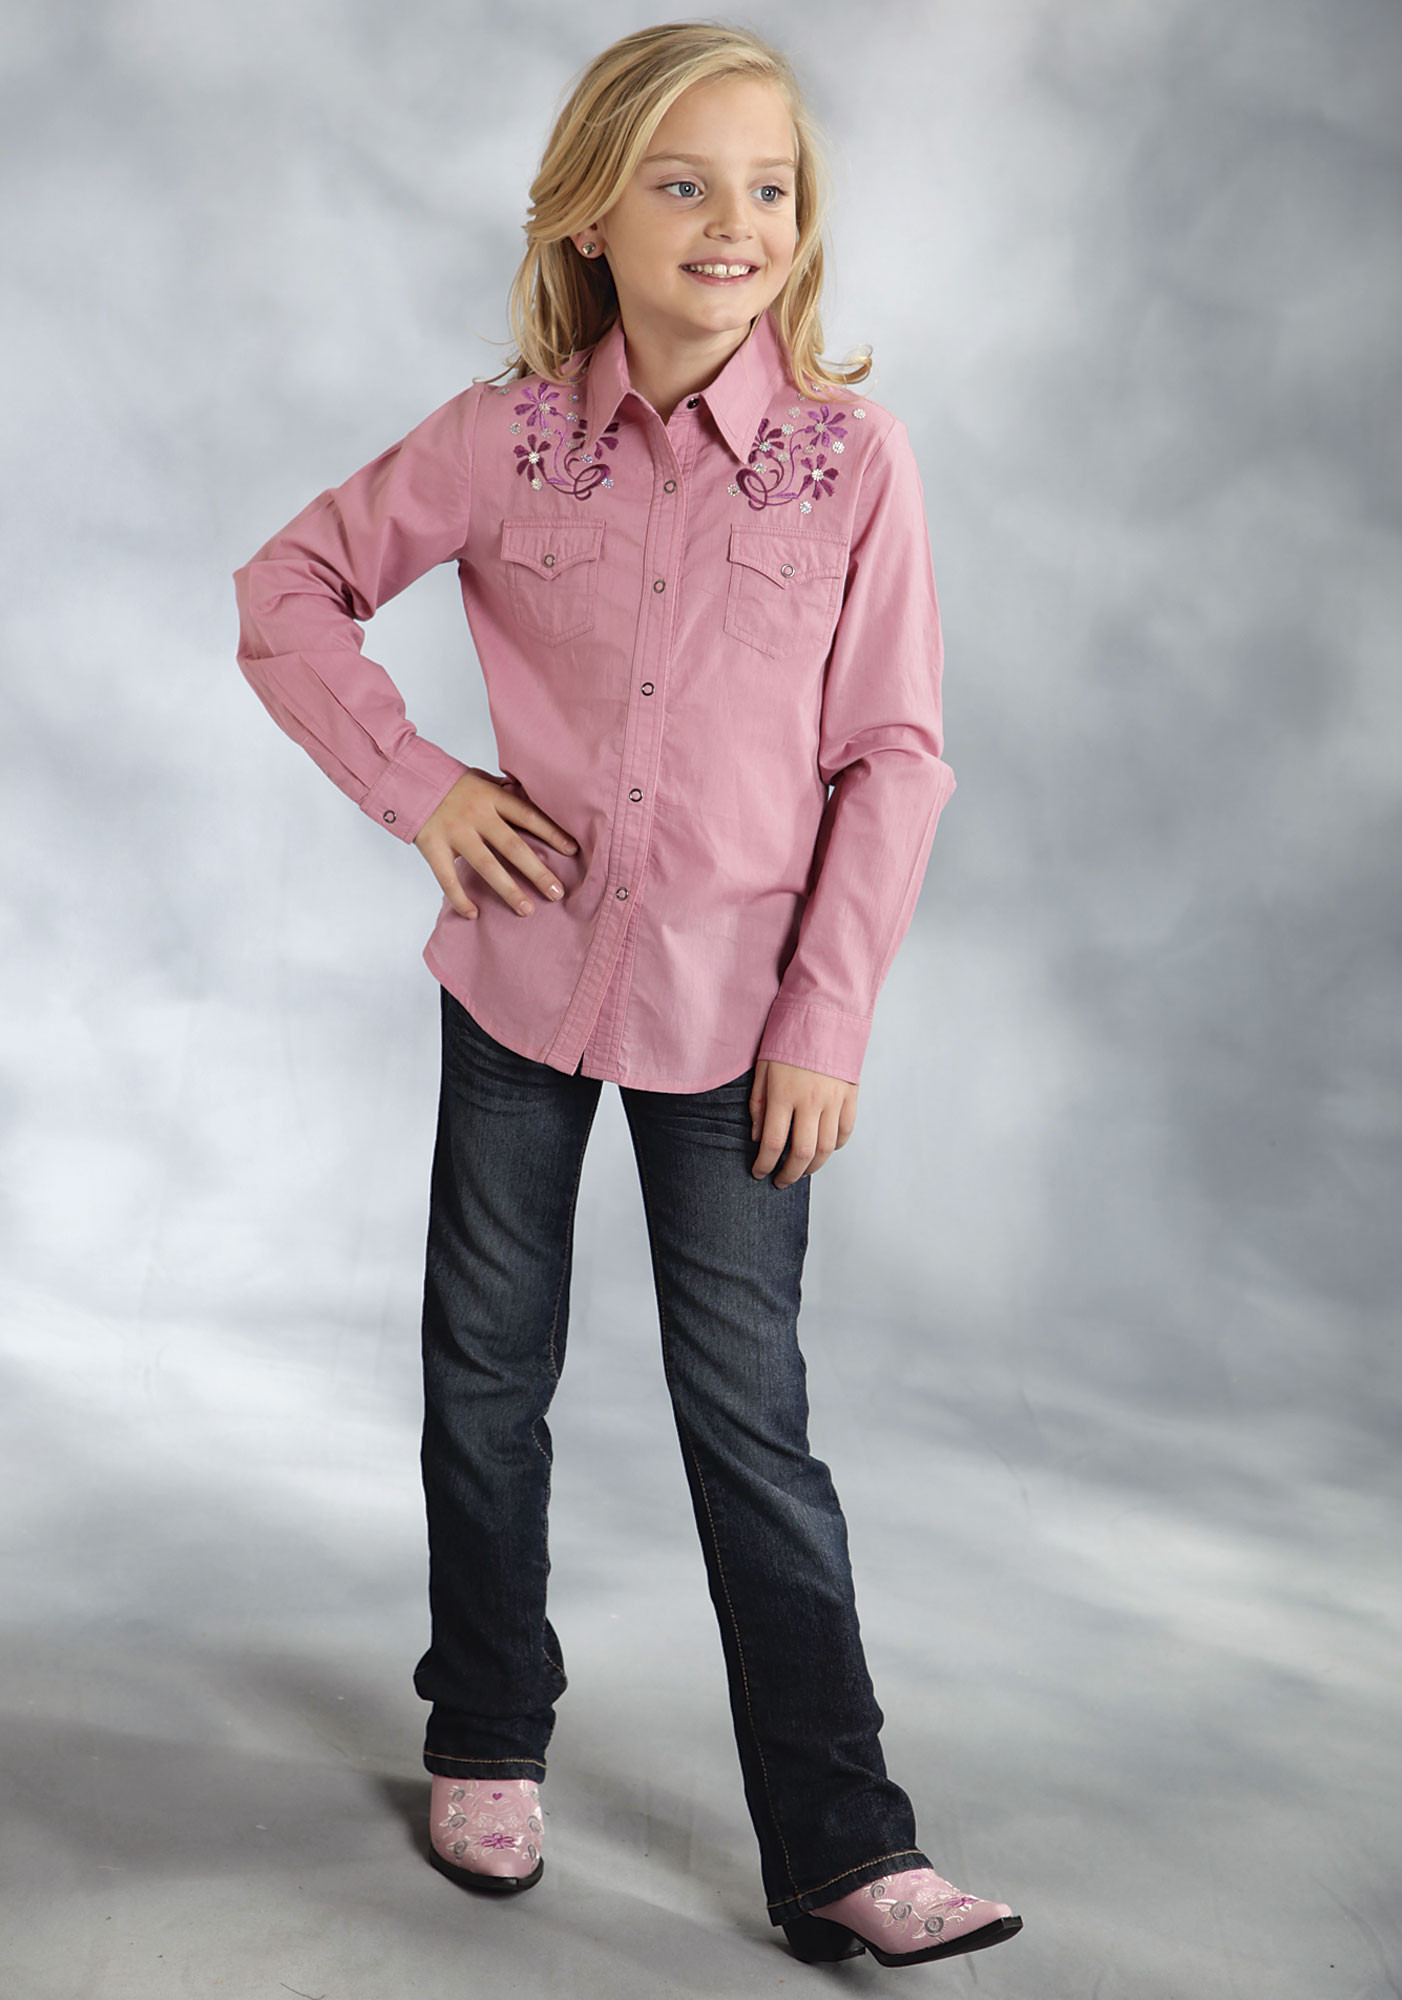 Find girls western shirts at ShopStyle. Shop the latest collection of girls western shirts from the most popular stores - all in one place.